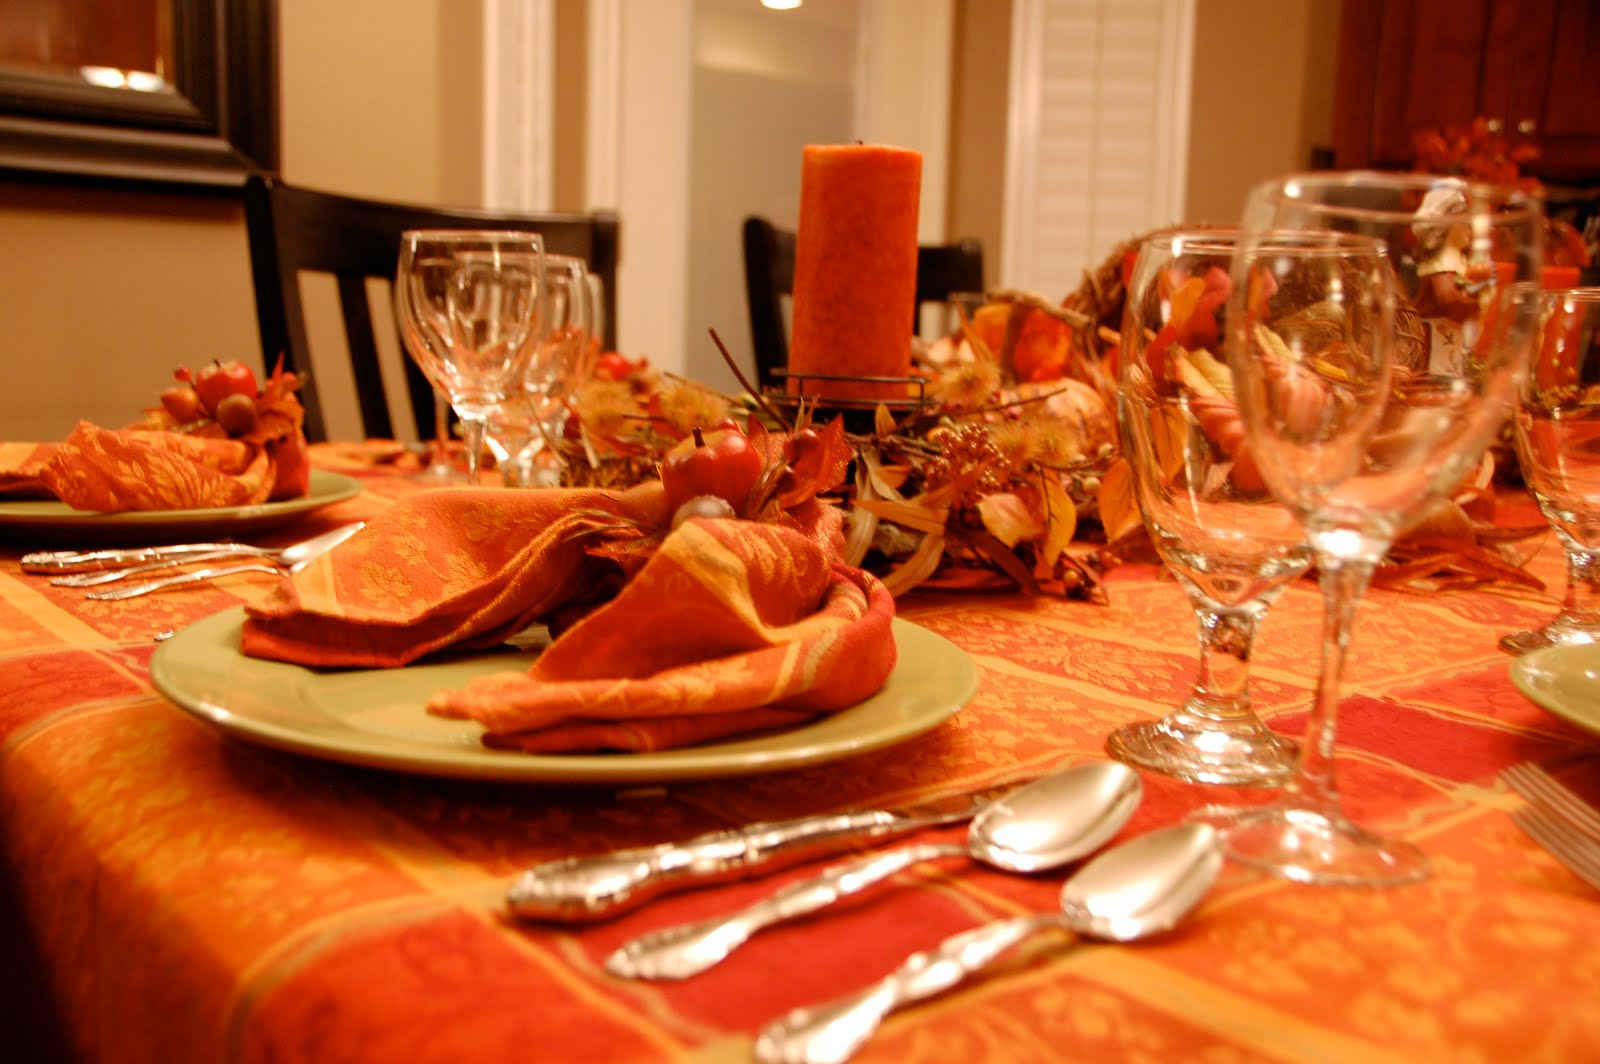 An empty chair deborah chapman newell How to set a thanksgiving dinner table